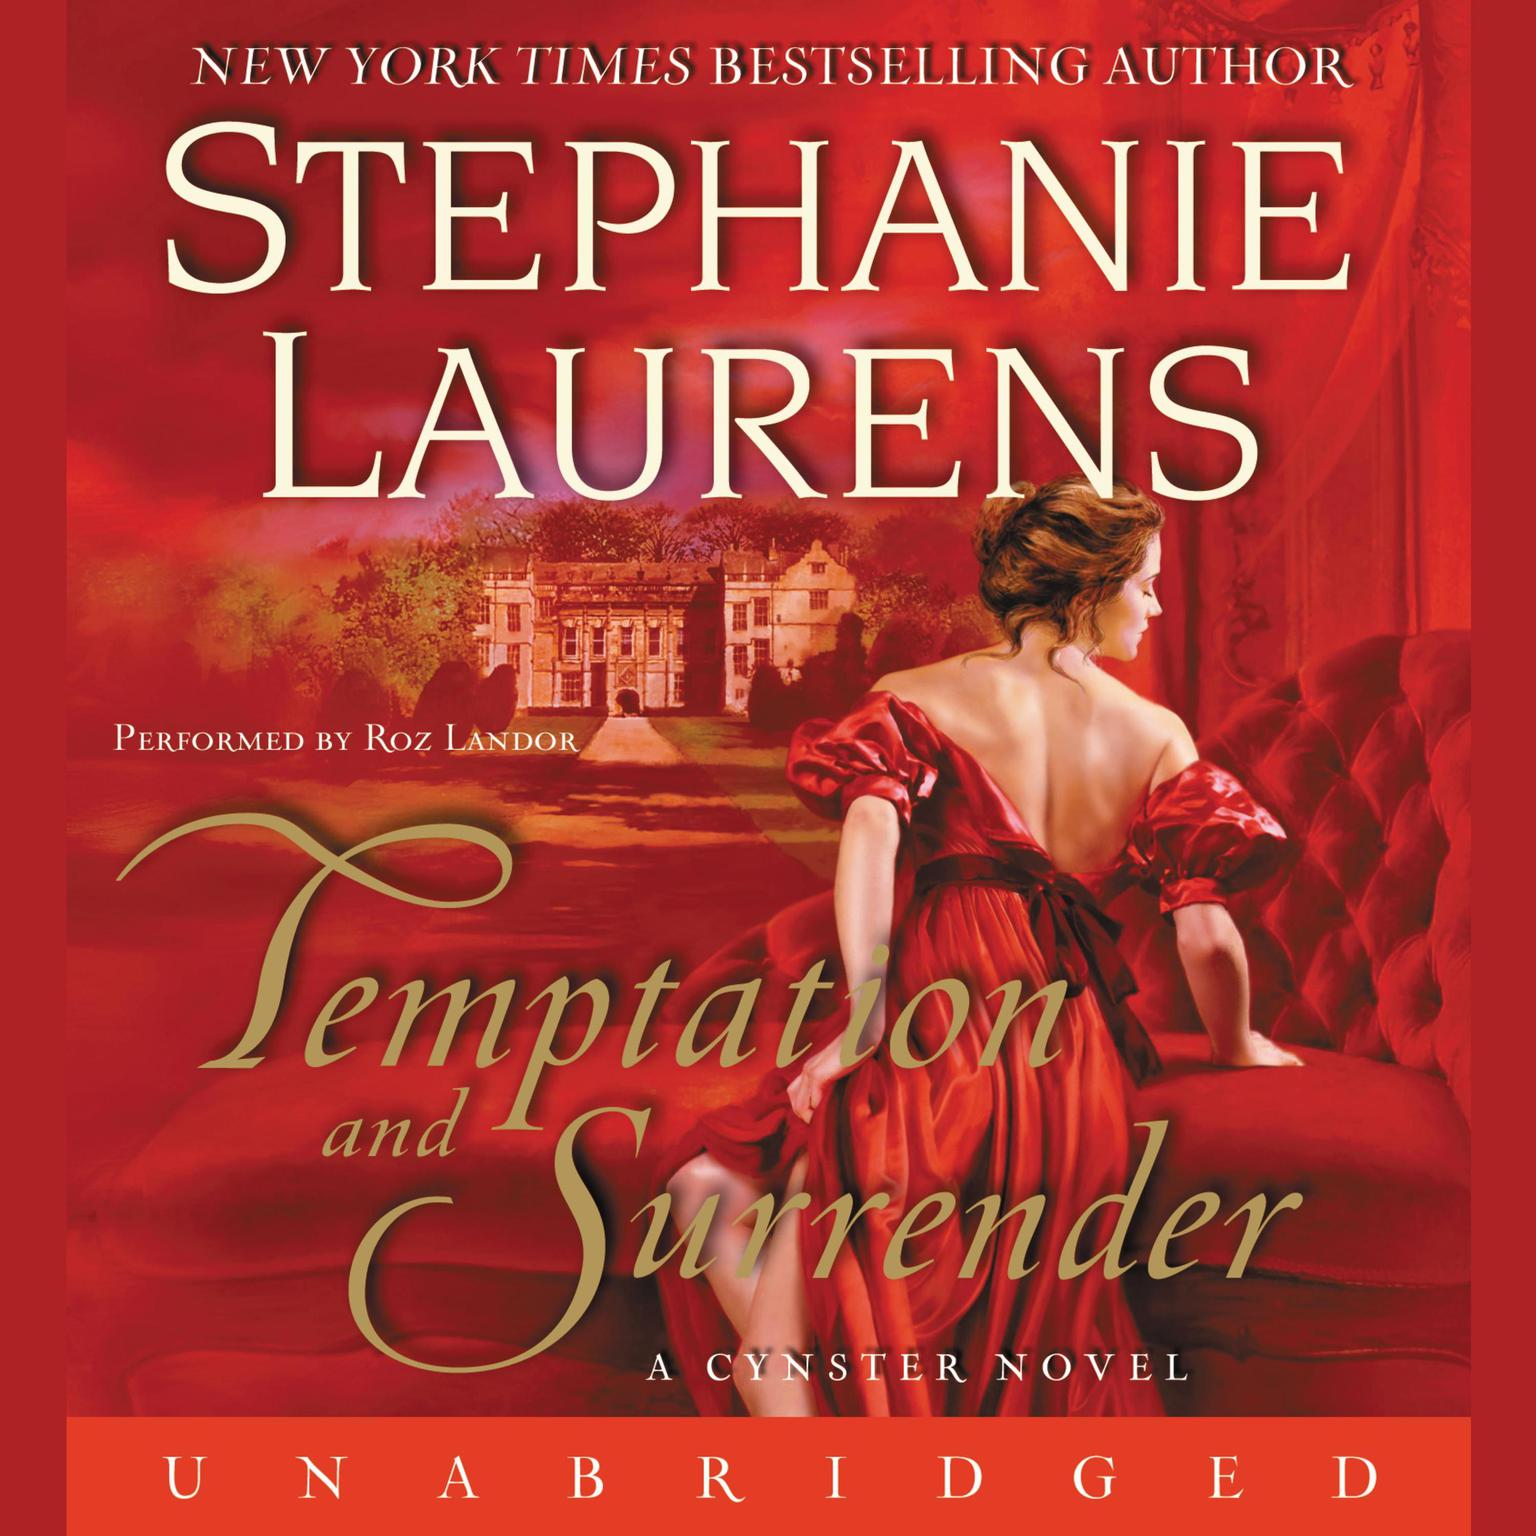 Printable Temptation and Surrender Audiobook Cover Art